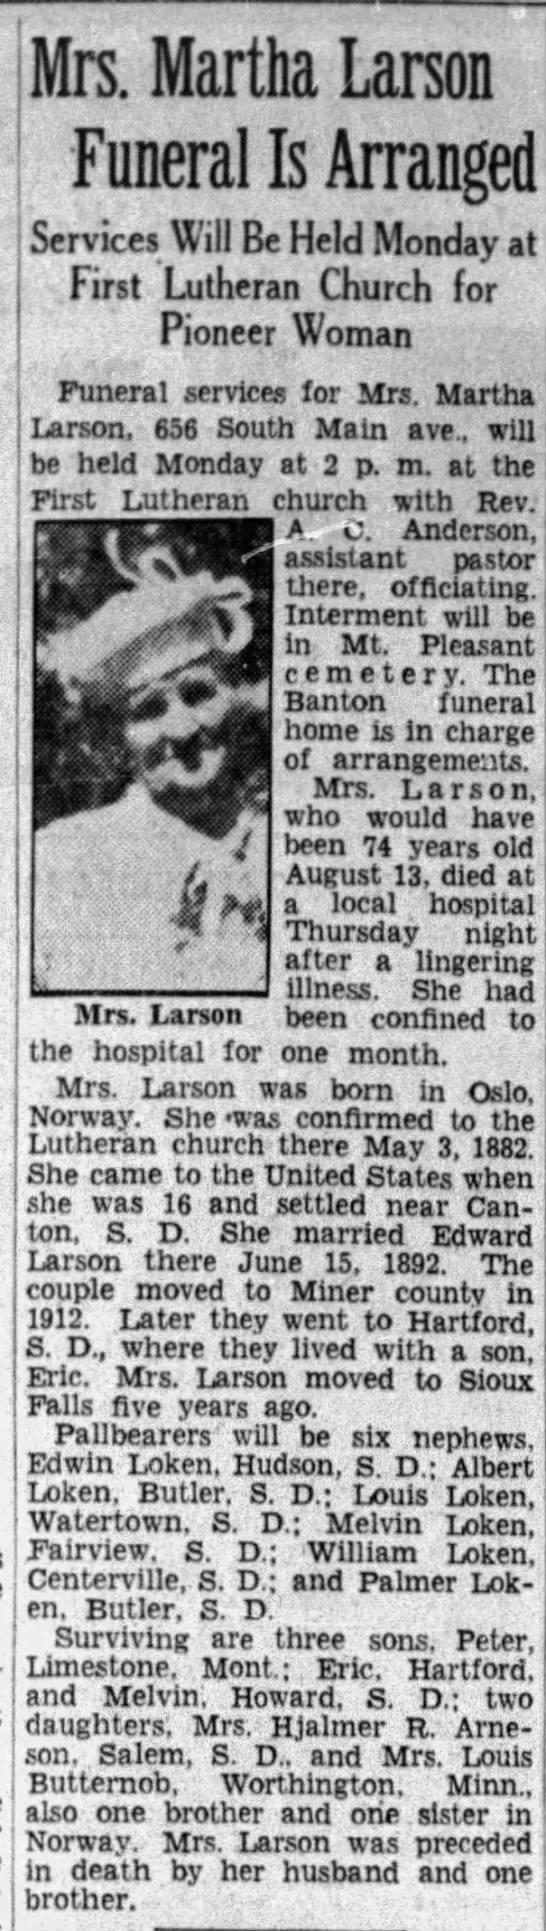 martha larson - Mrs. Martha Larson Funeral Is Arranged!...